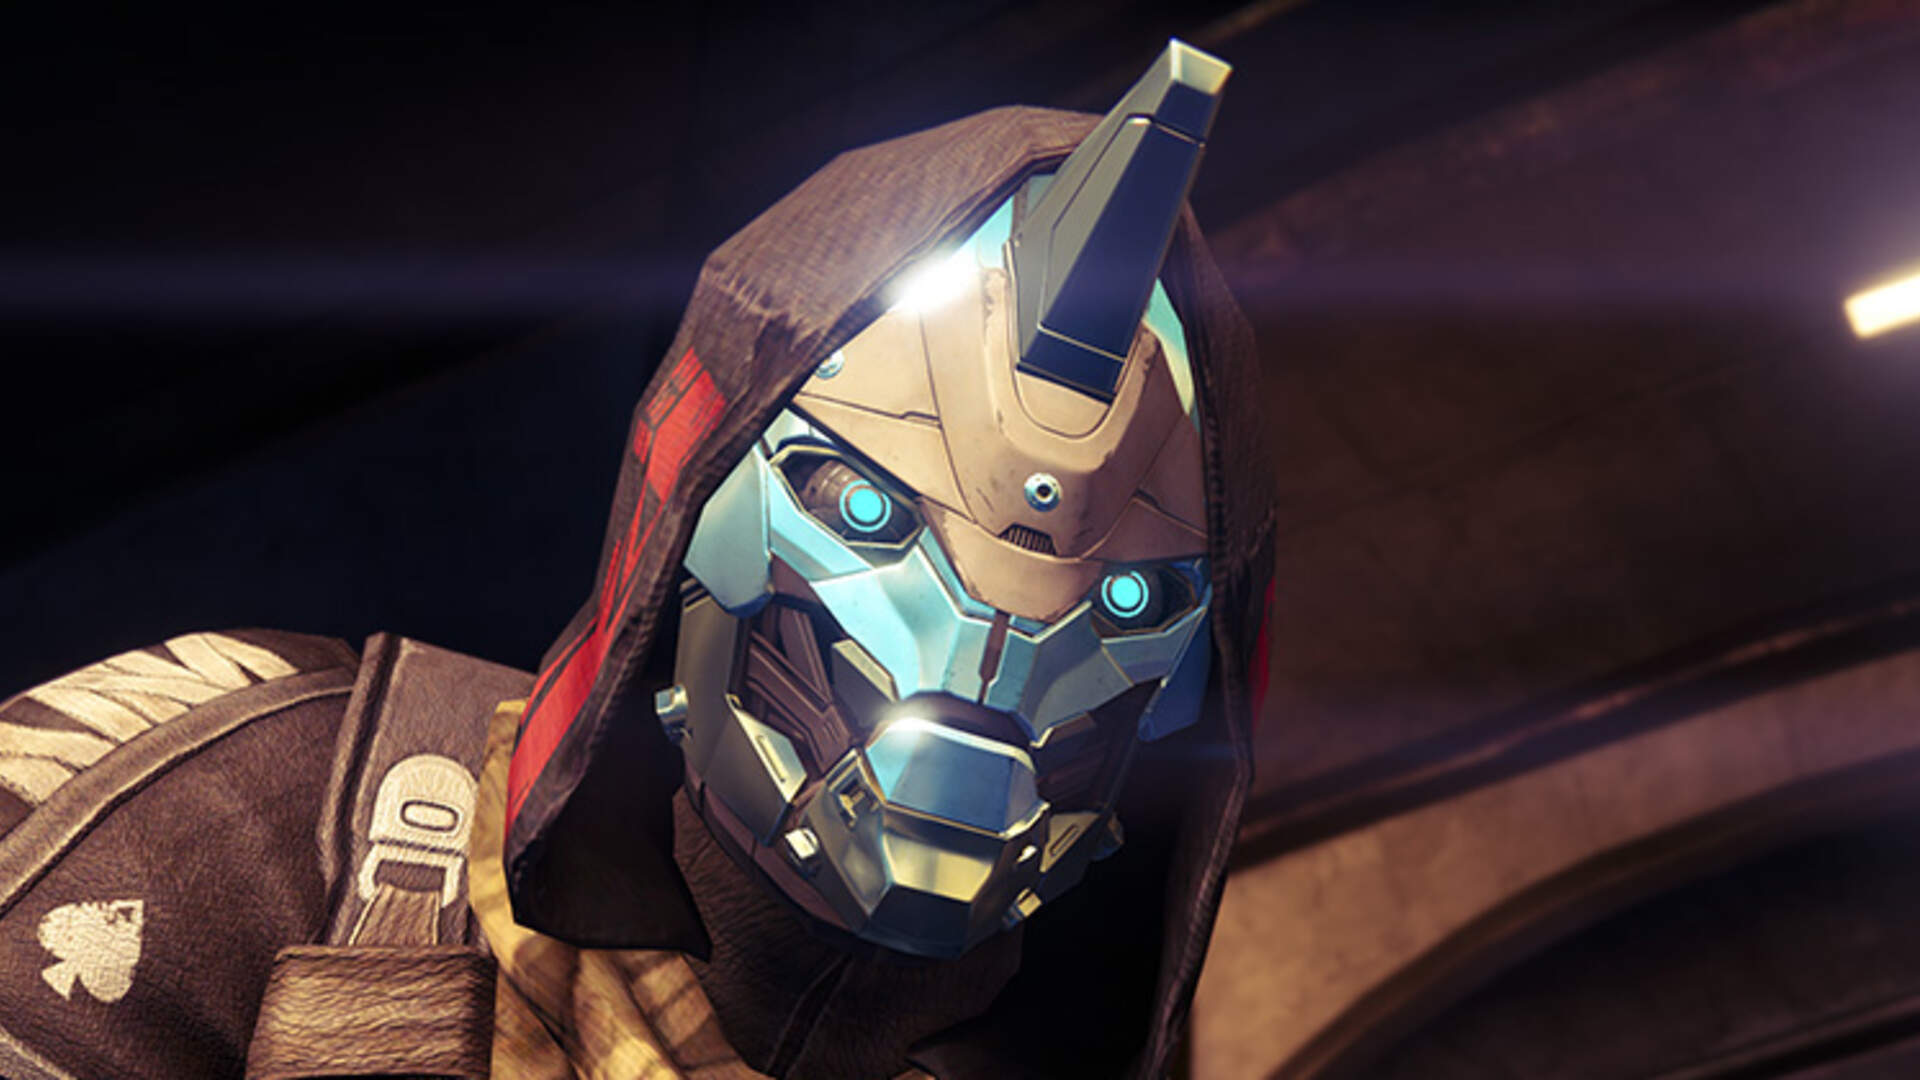 Destiny: The Taken King - Cayde's Stash - Stealth Drive